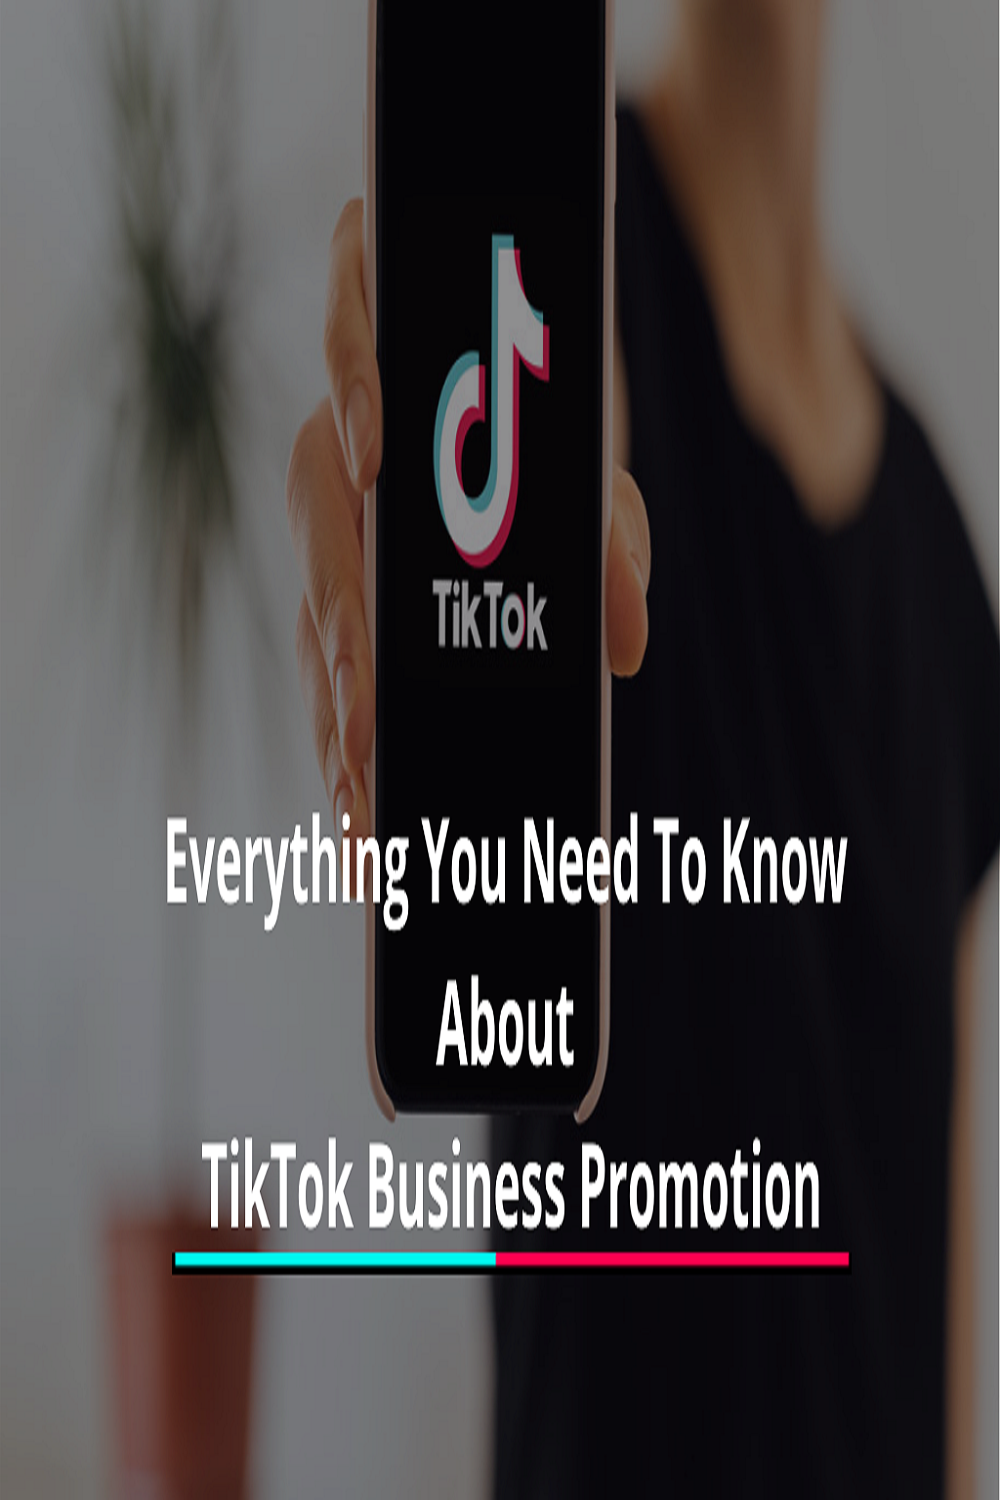 Everything You Need To Know About Promoting Your Business Tiktok Promote Your Business Promotion Business